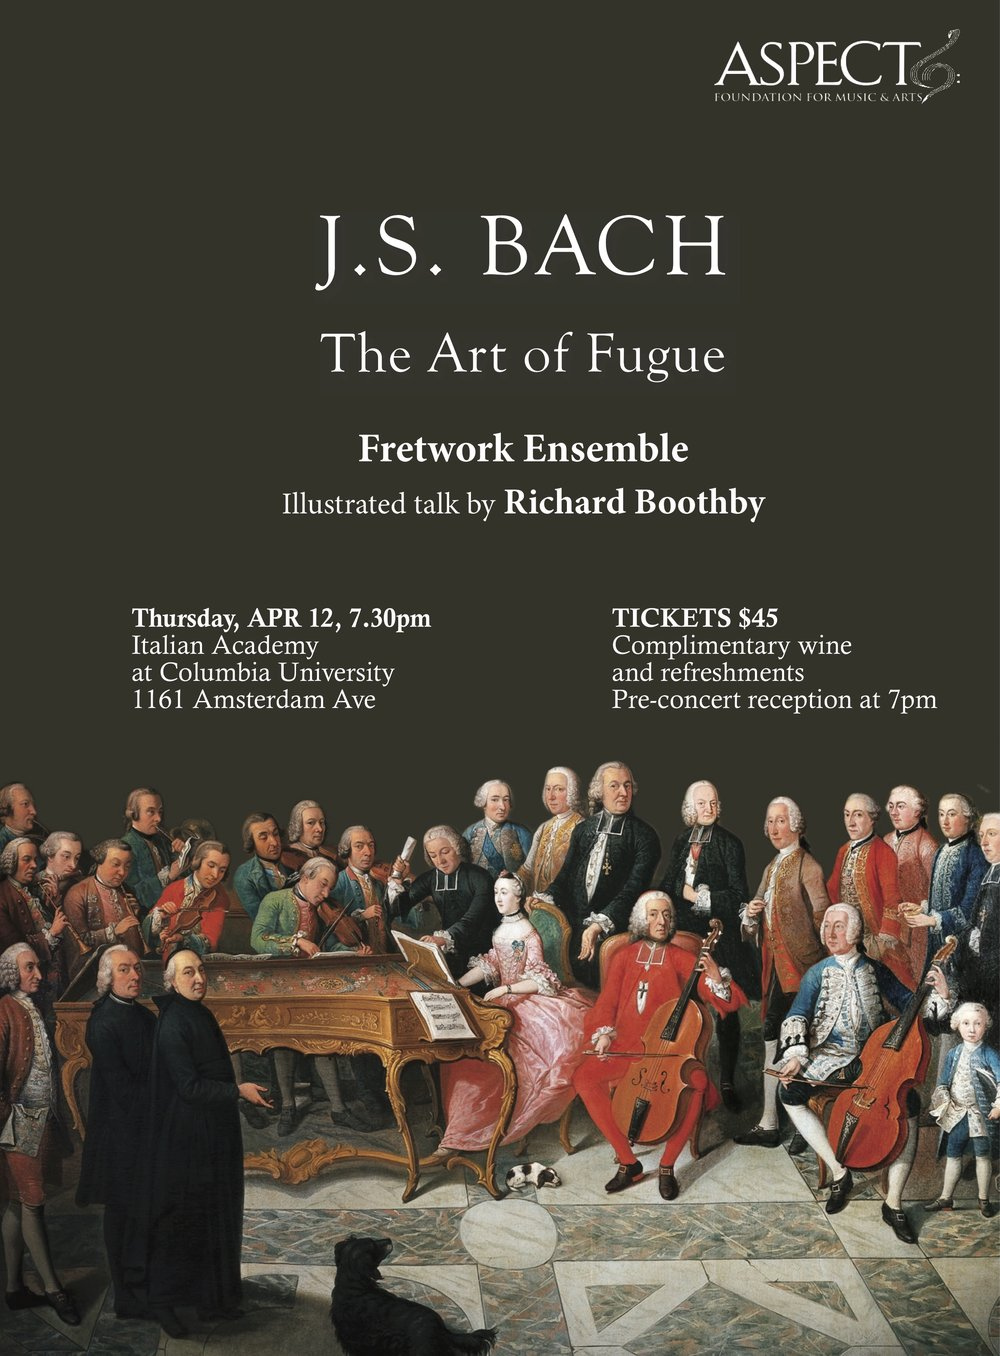 Dasha Cohen-Aspect-Bach-The Art of Fugue 16x24 poster DM.jpg